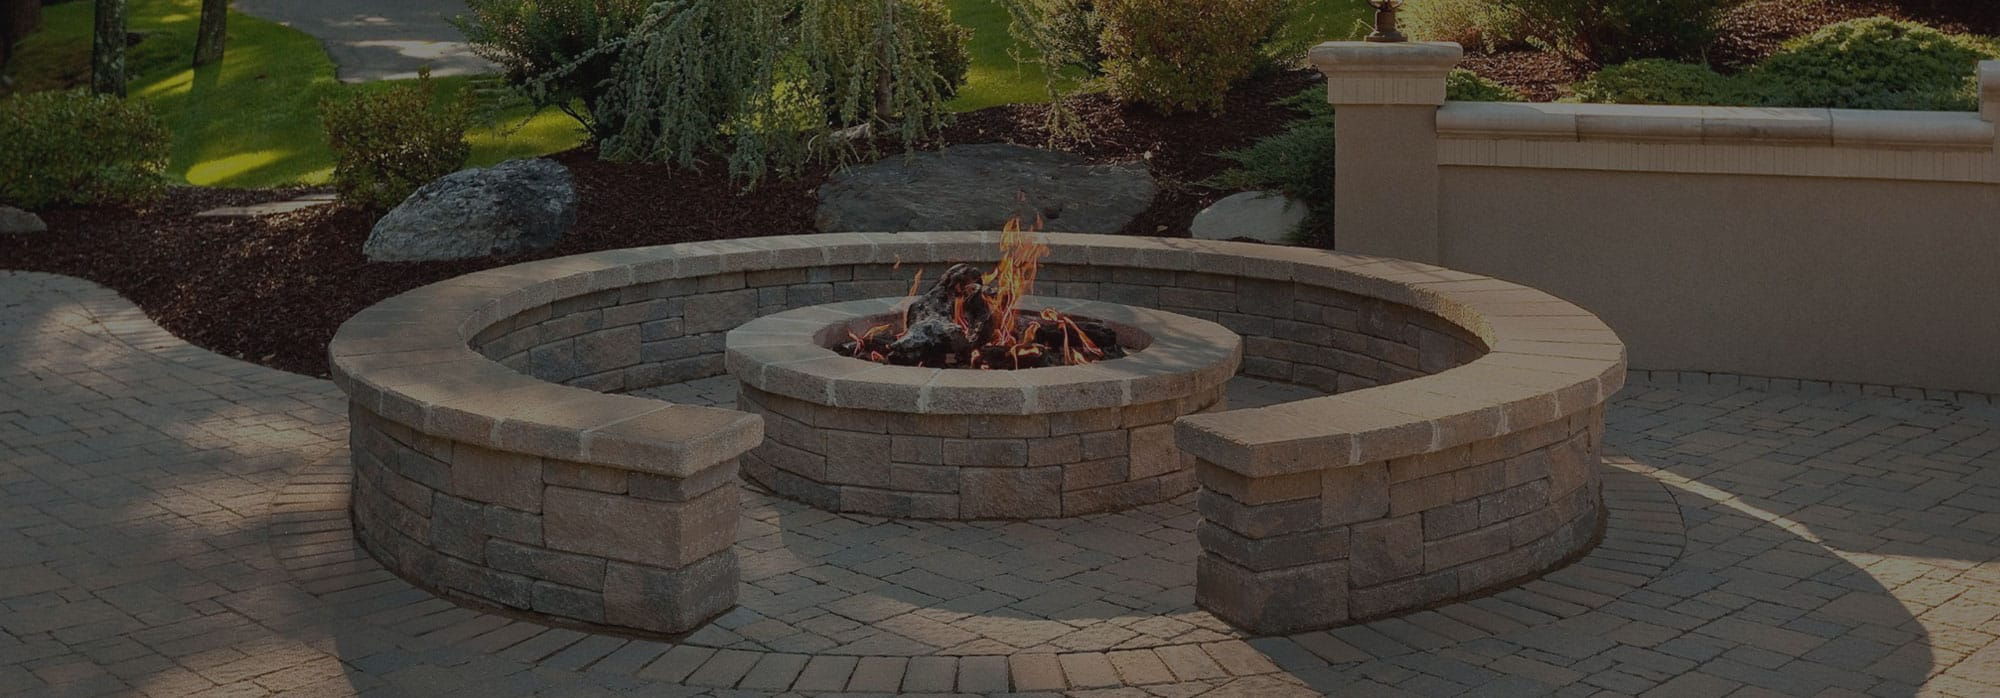 Backyard Fire Pits Landscaping Supplies